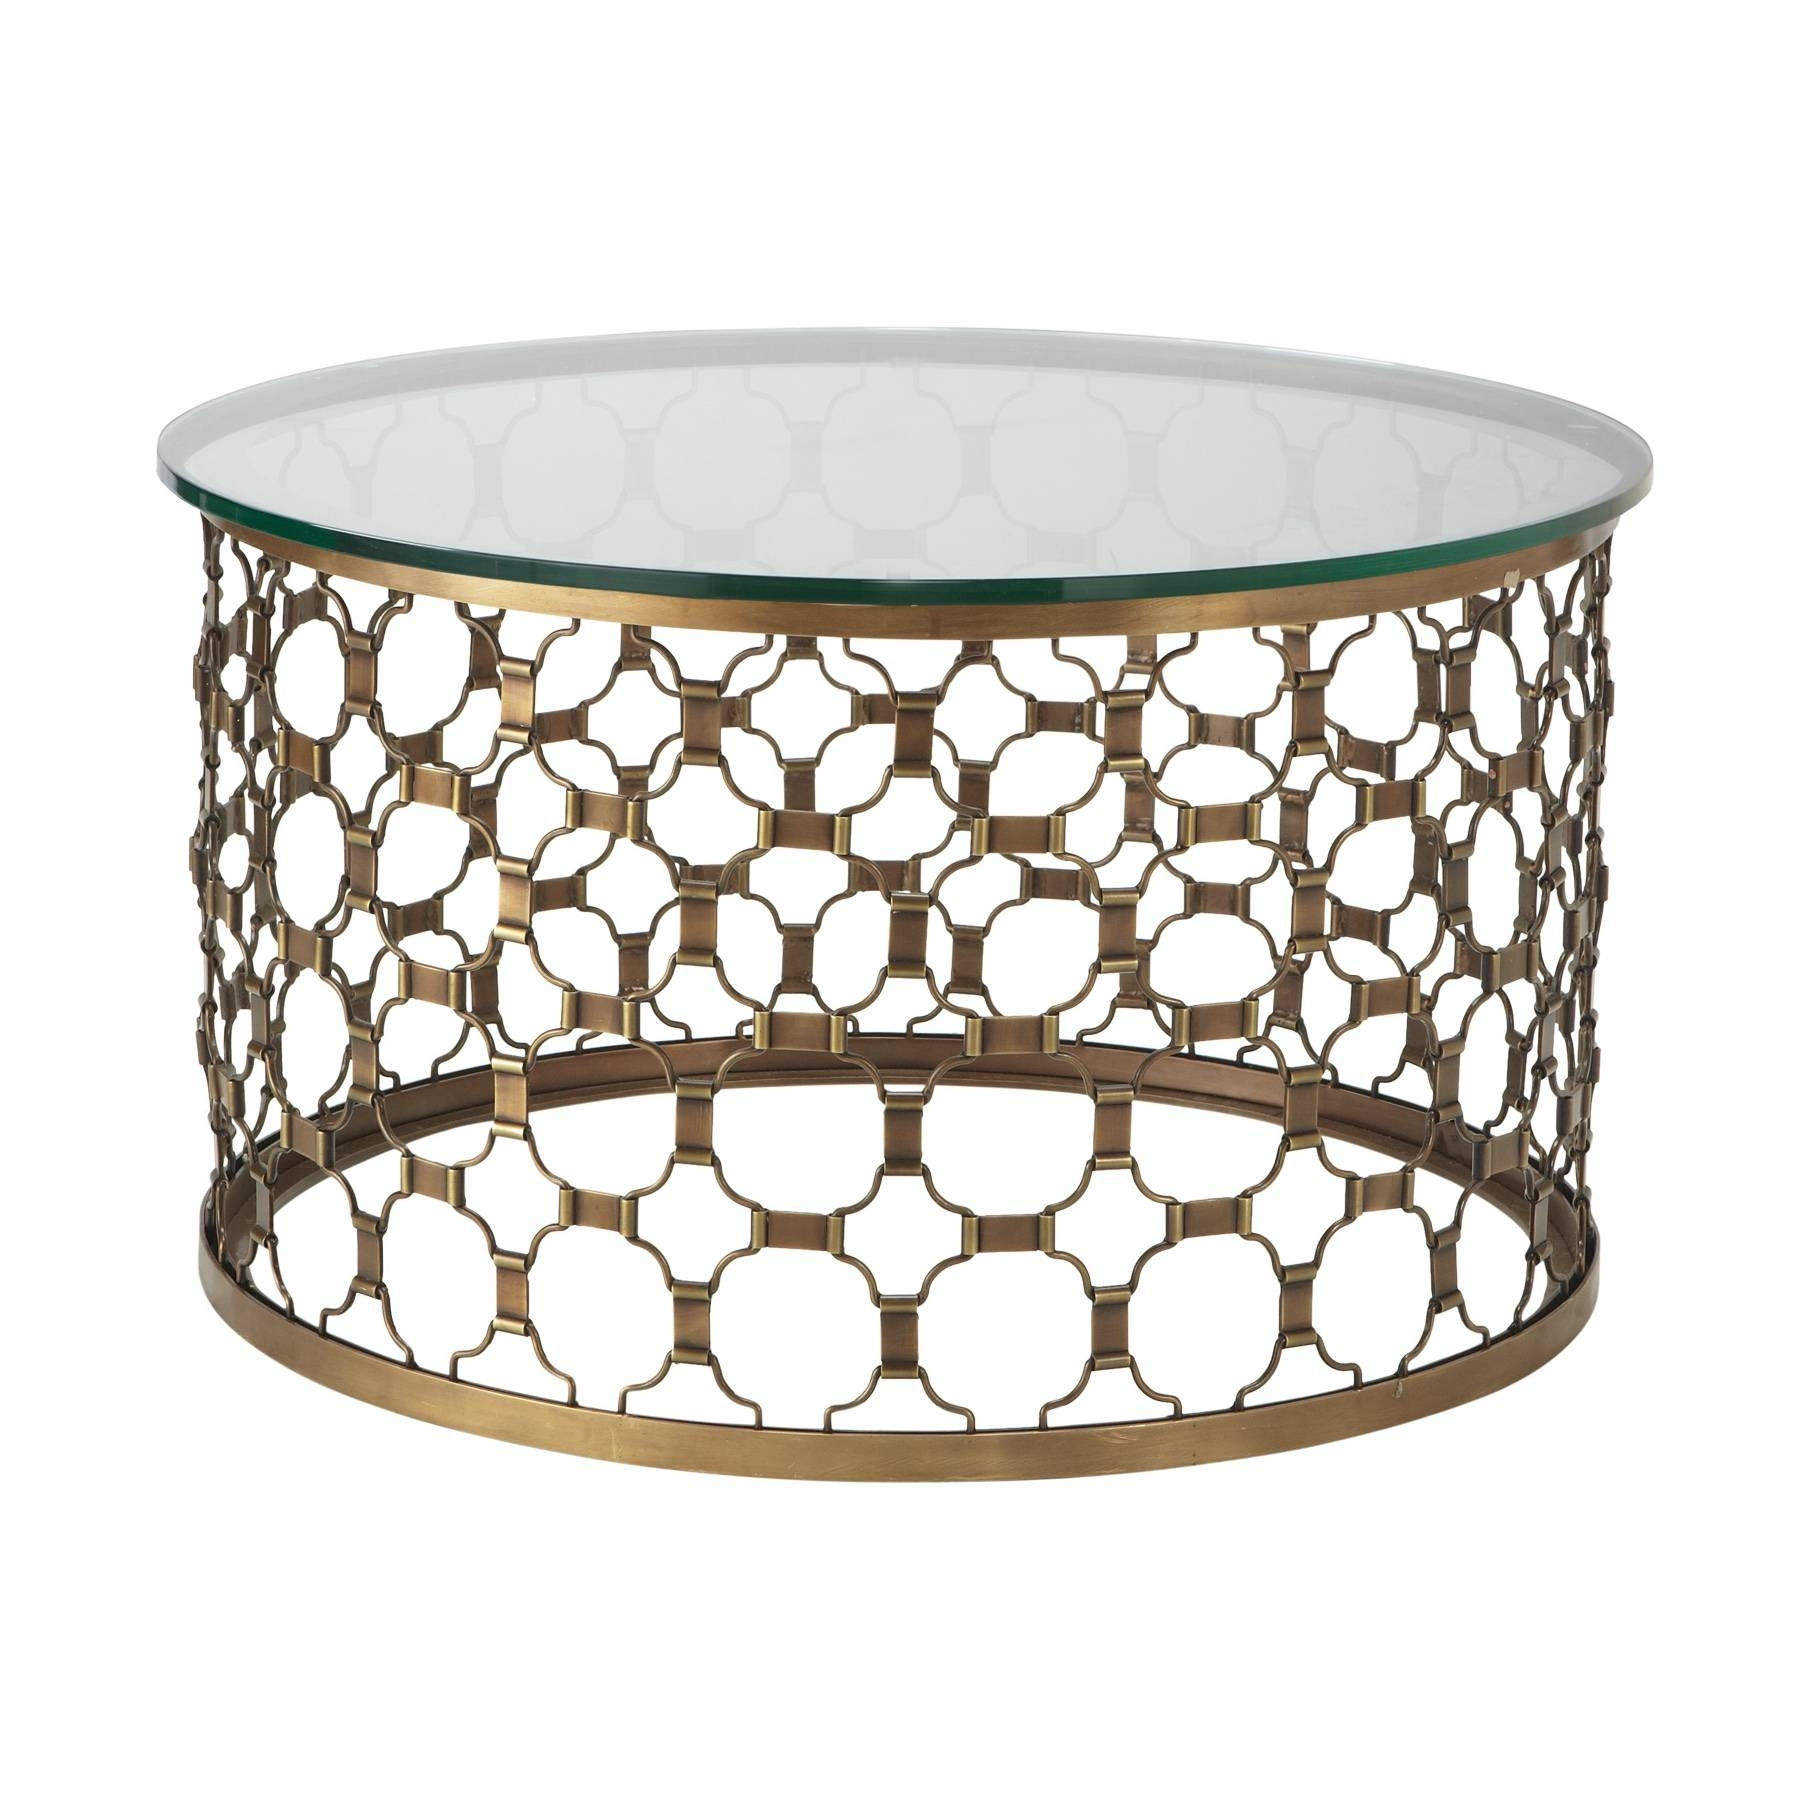 Metal Coffee Table With Glass Top – Safeti for Round Steel Coffee Tables (Image 15 of 30)